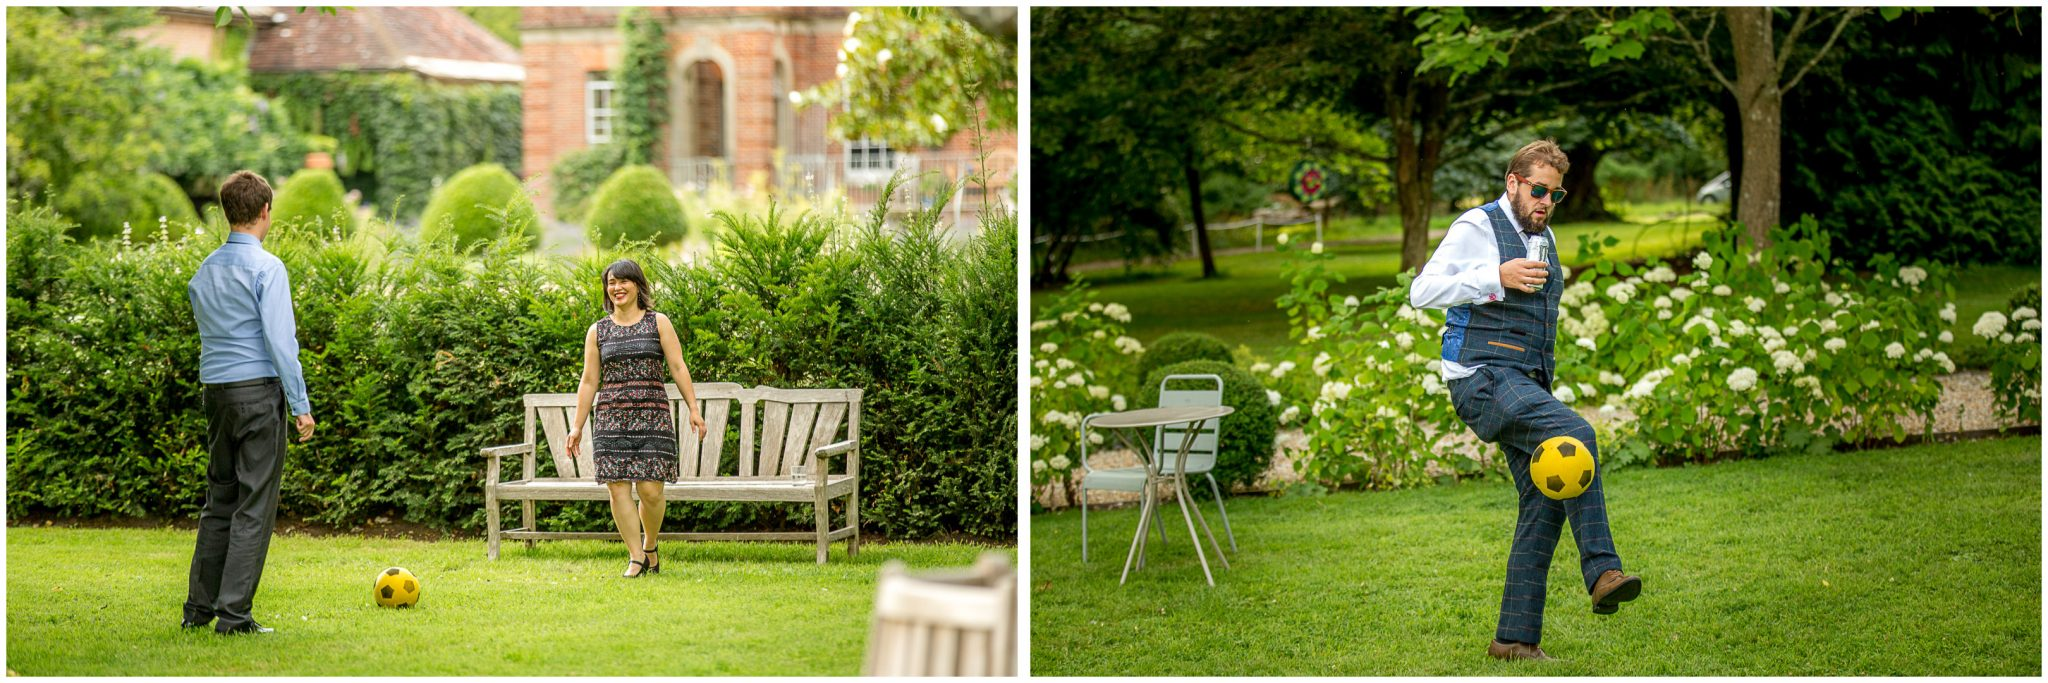 Guests enjoying the gardens in the evening light